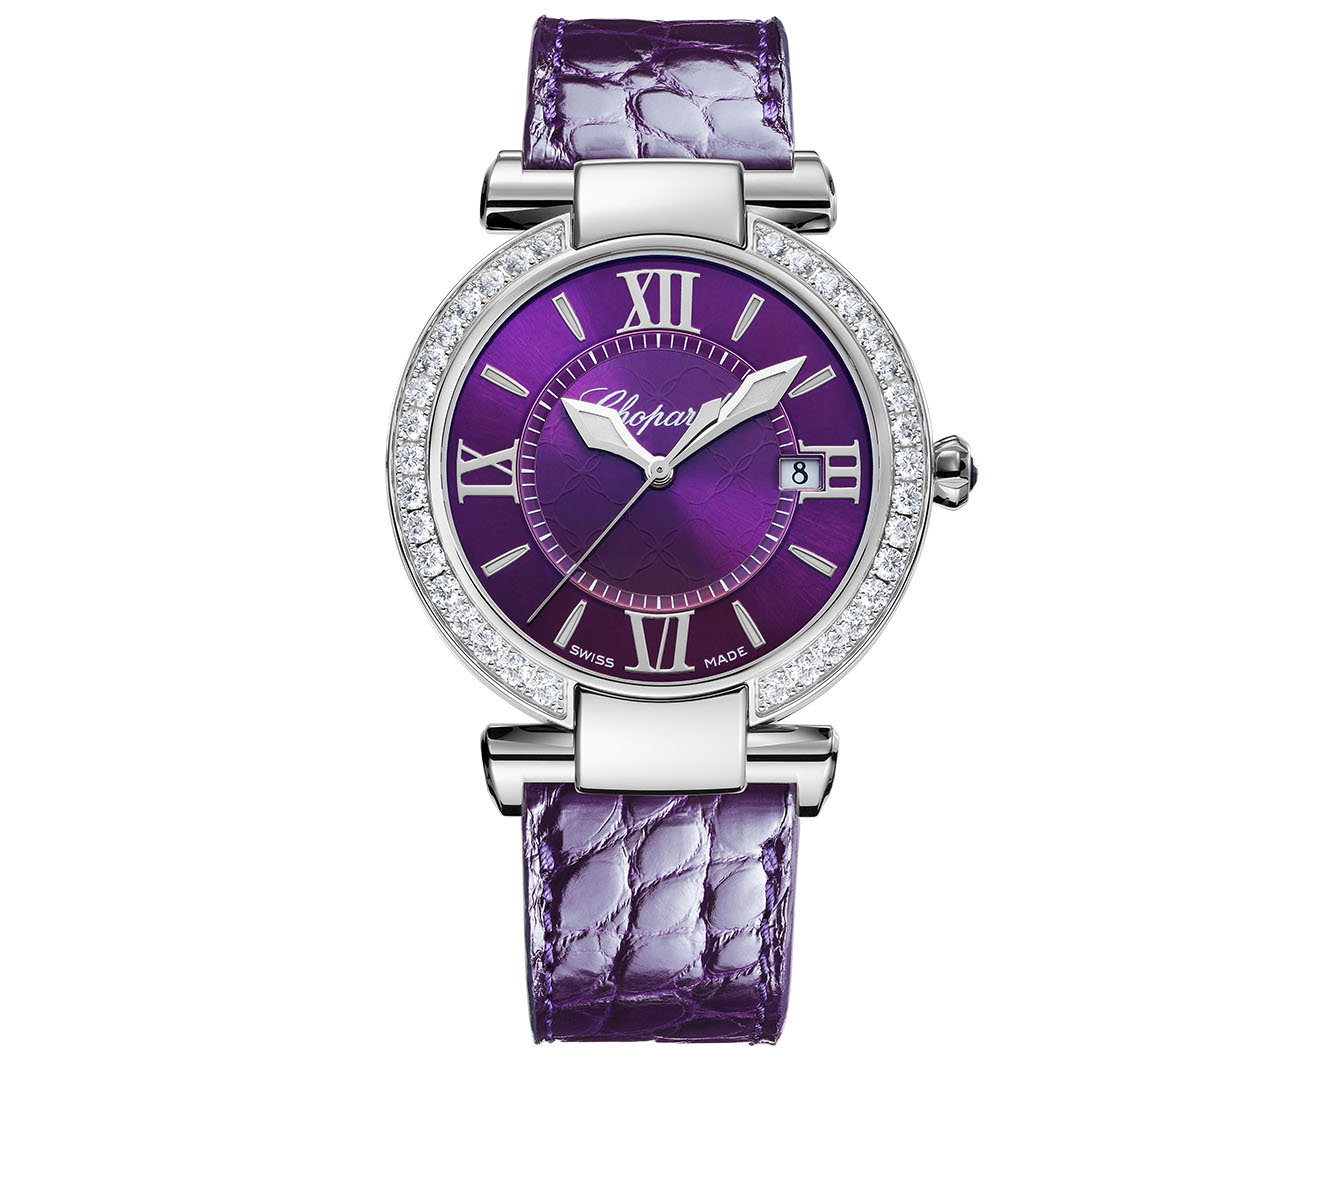 Часы Imperiale Chopard Imperiale 388532-3012 - фото 1 – Mercury